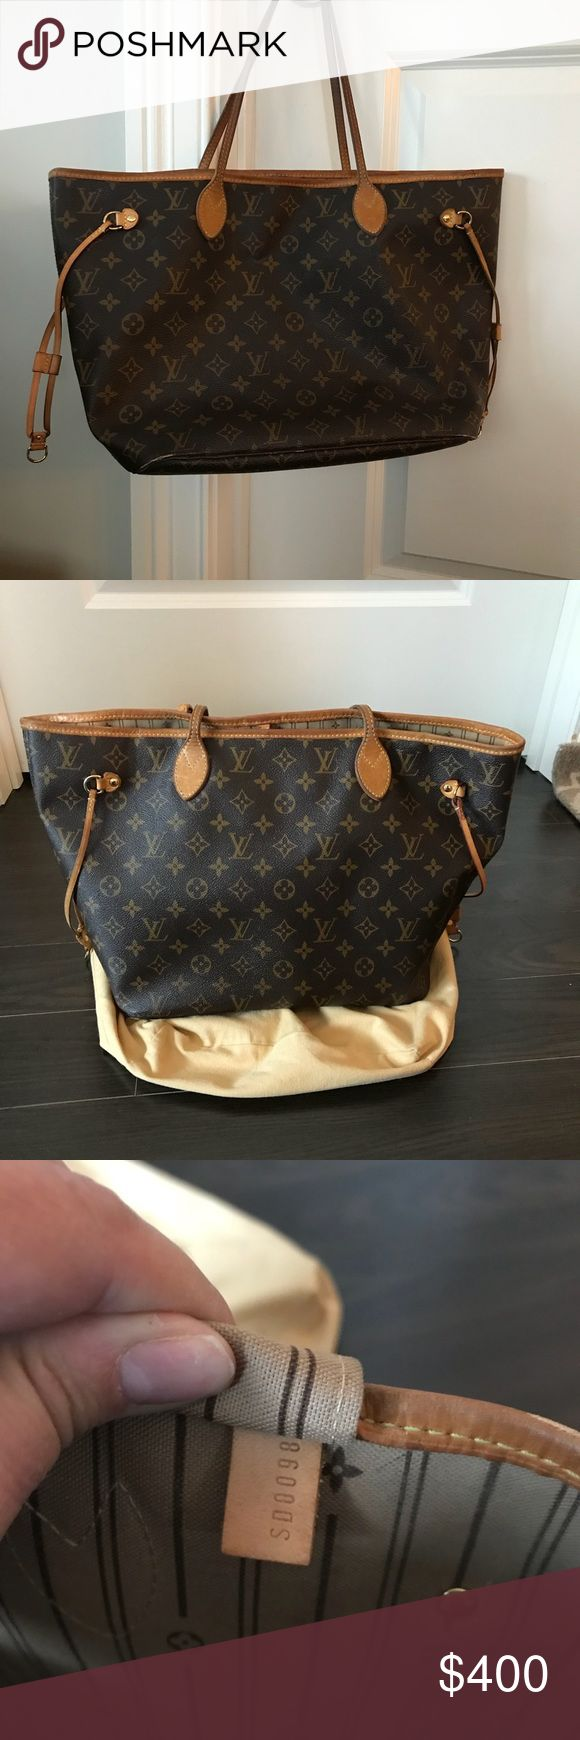 Louis Vuitton Neverfill Louis Vuitton medium neverfill purse with dust bag. Authentic. Very loved, lots of travel. Purchased in 2007.  Wear and tear pictures including handle, the bottom (all 4 sides), peeling in the pocket and ink marks inside the purse. Please email with questions. Louis Vuitton Bags Shoulder Bags